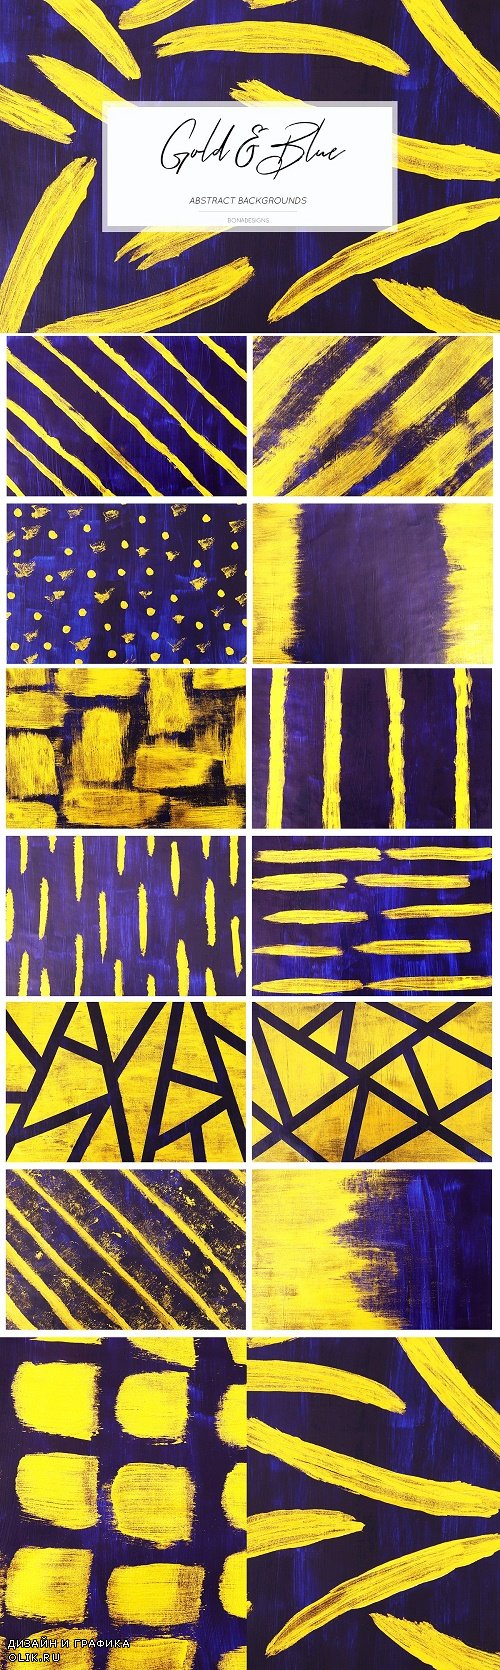 Gold Blue Backgrounds,Gold Textures - 3960597